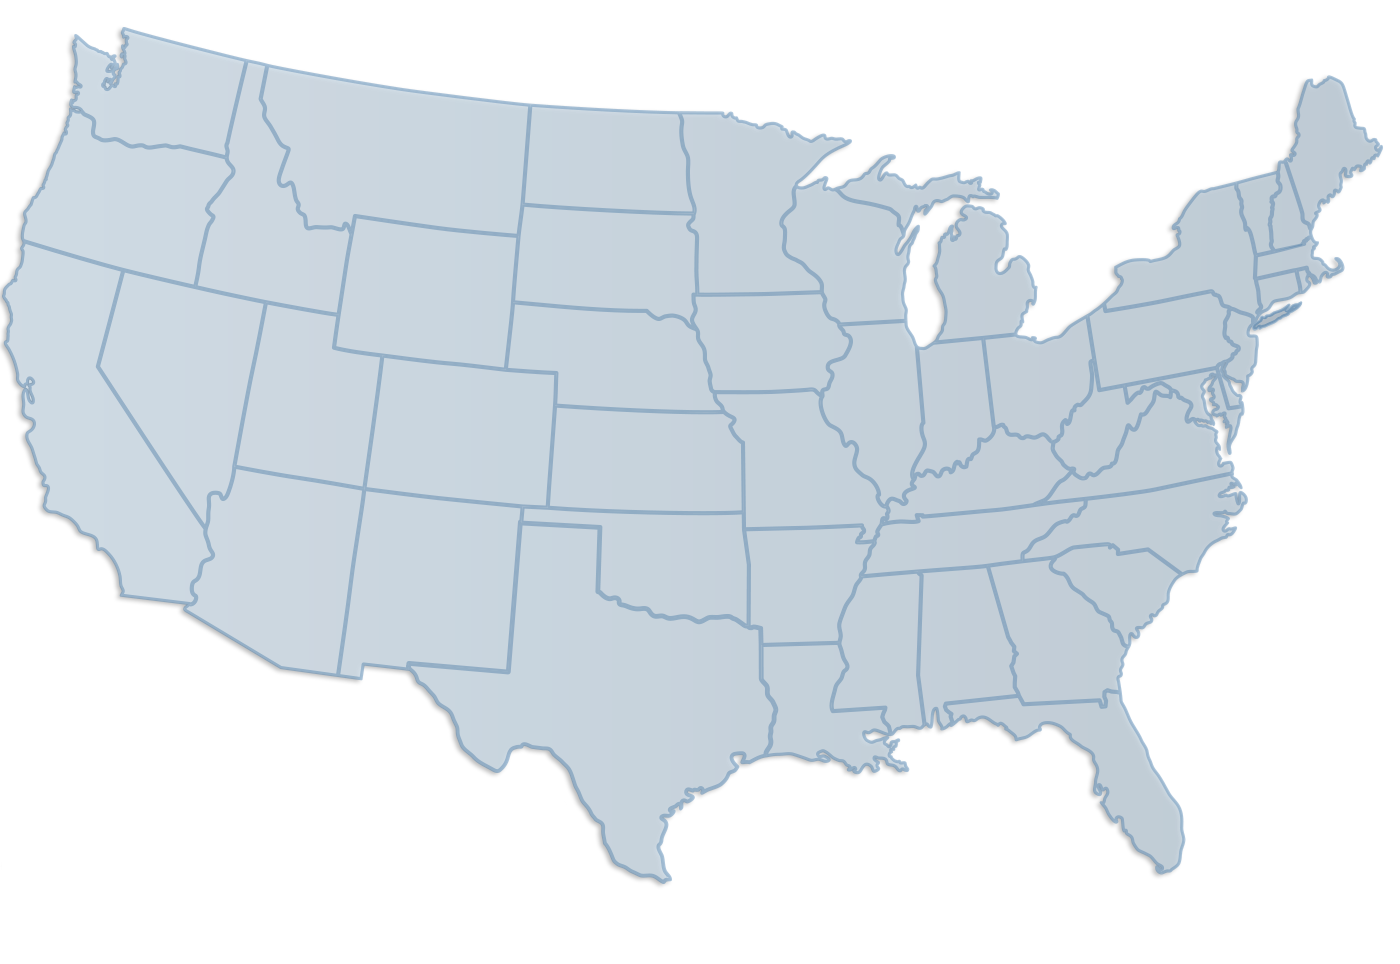 outline management and united states Download free blank us state outline maps in fully editable digital vector maps offers publishers from simple blank united states and world maps.